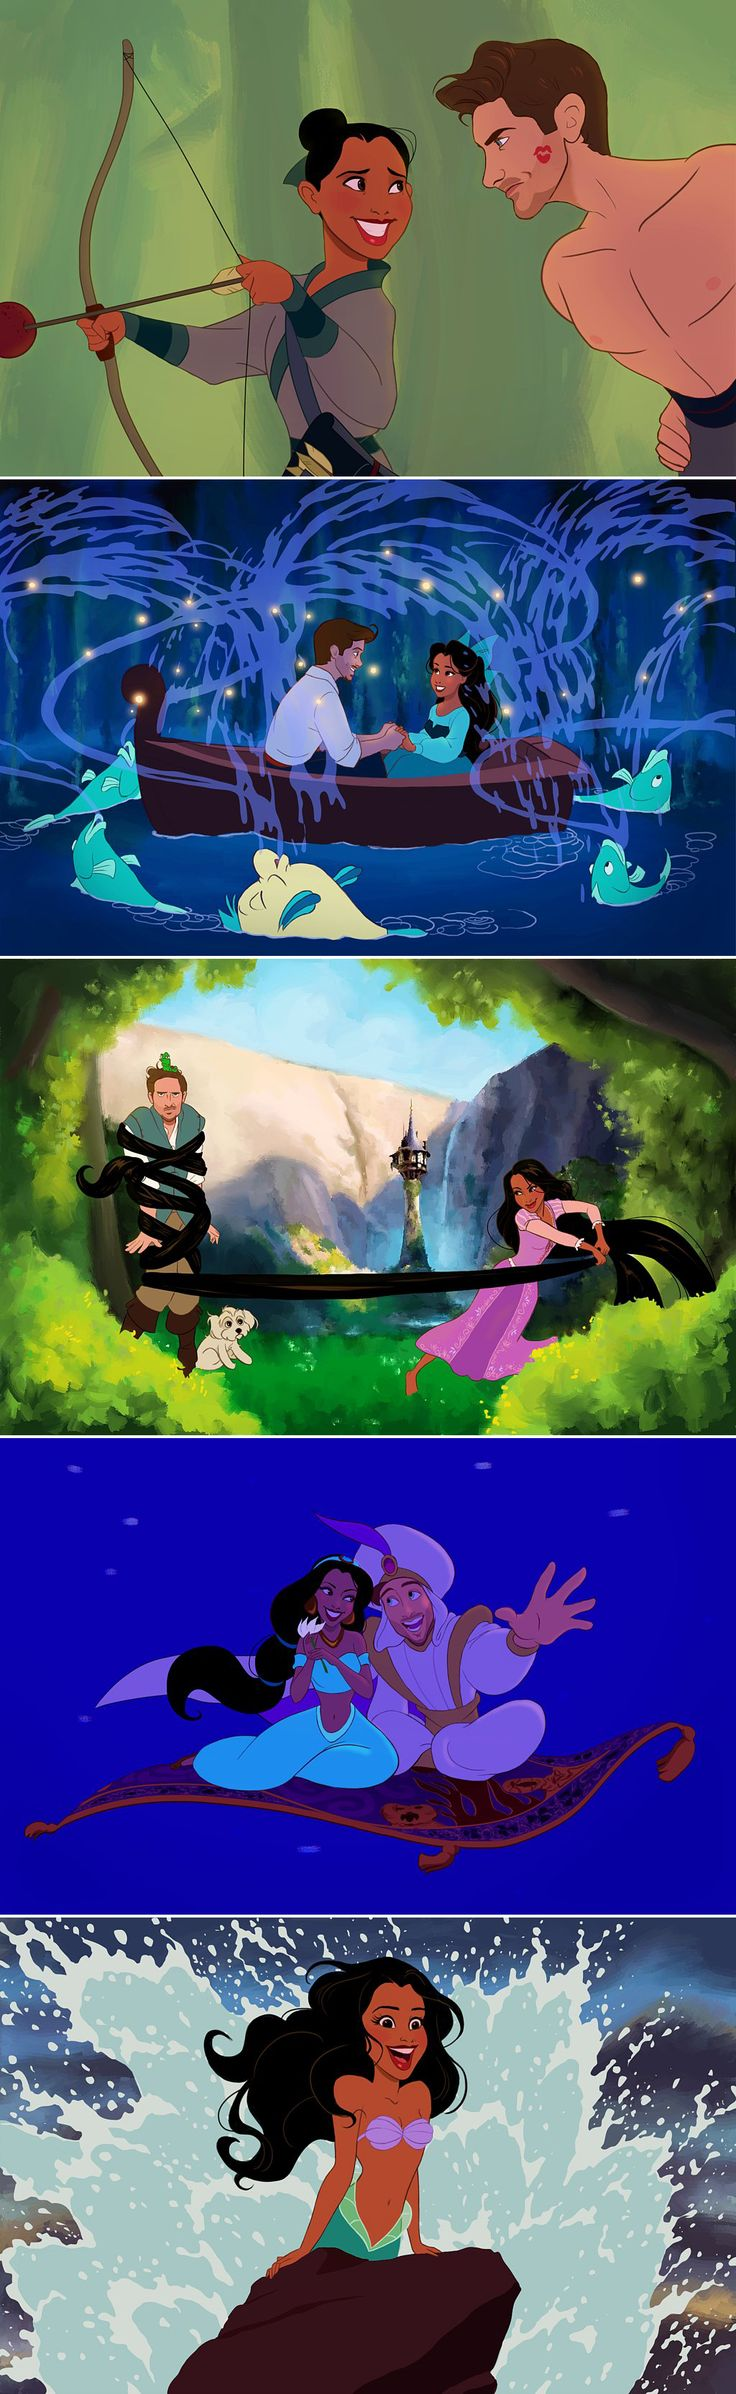 Best. Valentine. Ever. This boyfriend turned his girlfriend and himself into Disney princes and princesses!